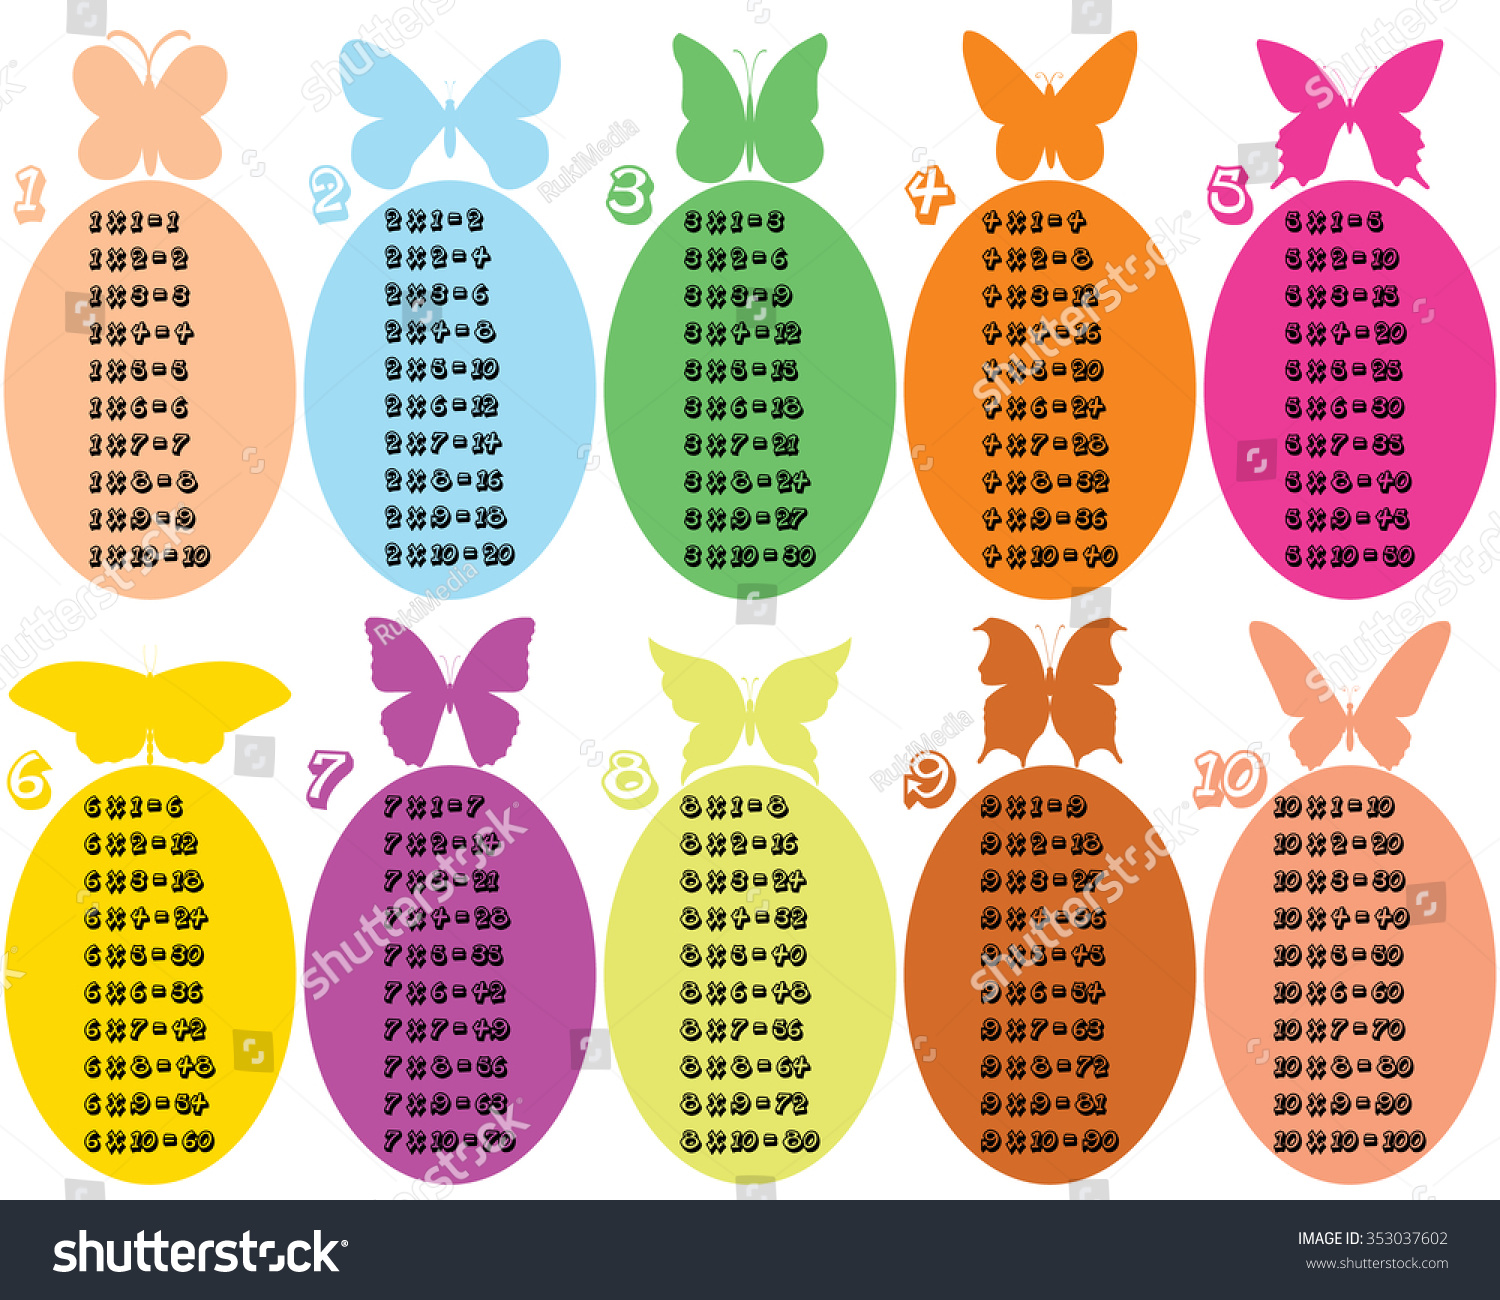 Worksheets Tables From 1 To 10 colorful multiplication table between 1 10 stock vector 353037602 to with different and butterflies as educational material